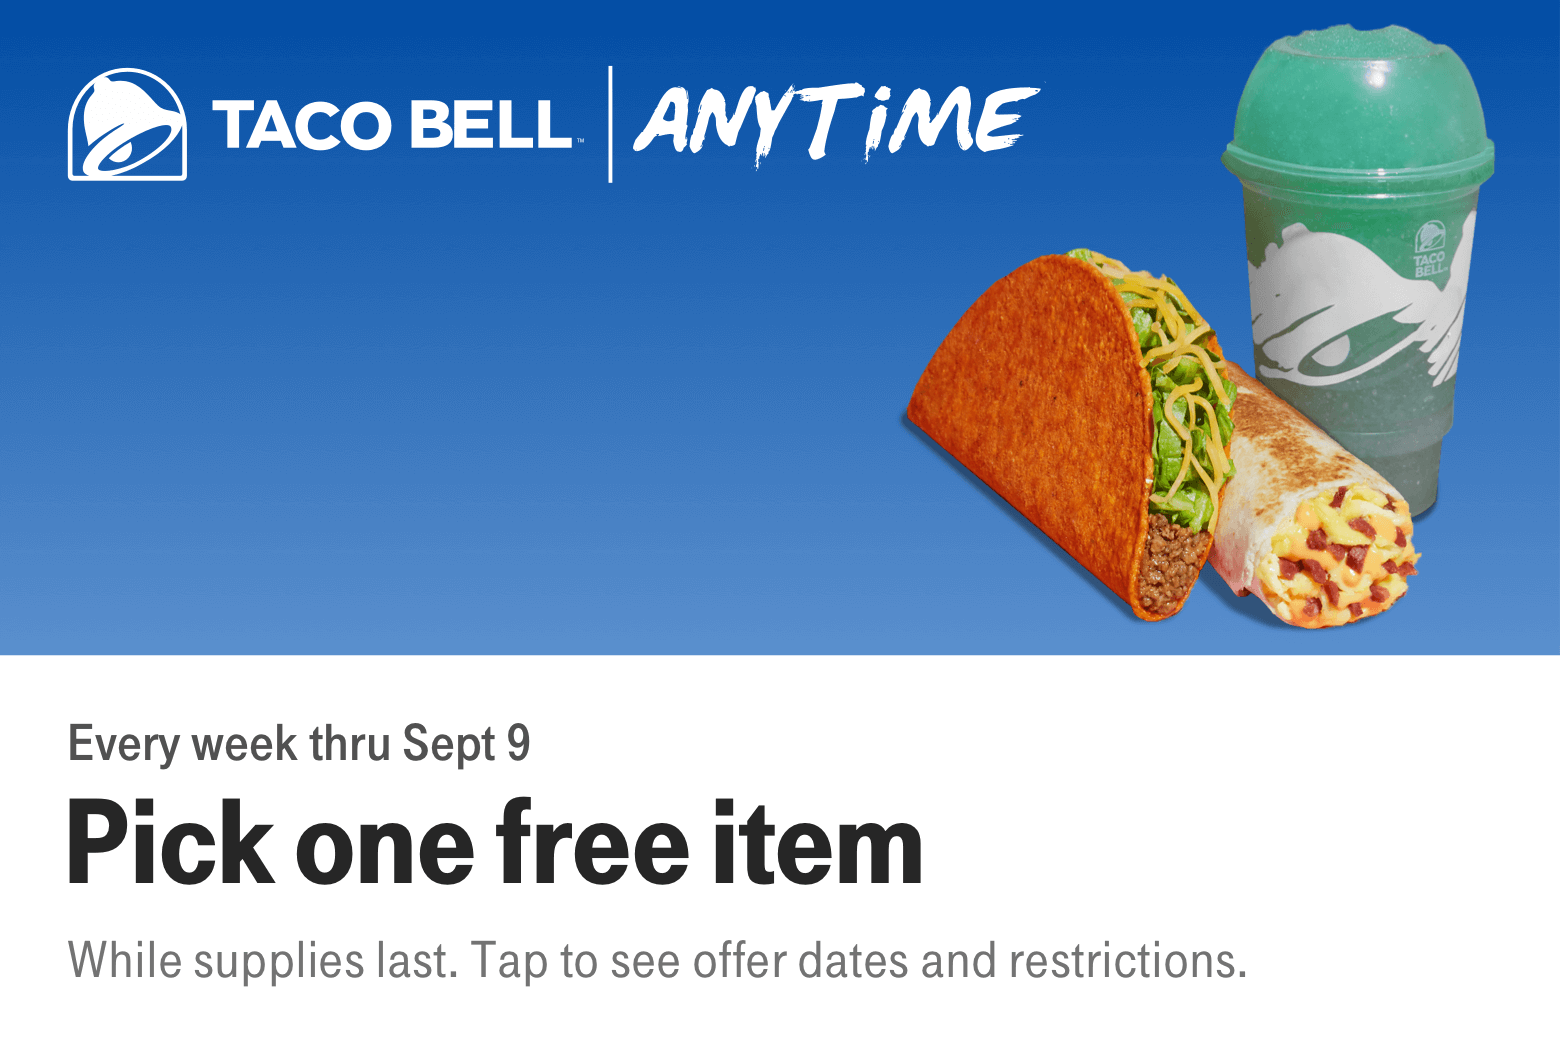 Every week thru Sept 9. Pick one free item. While supplies last. Tap to see offer dates and restrictions.